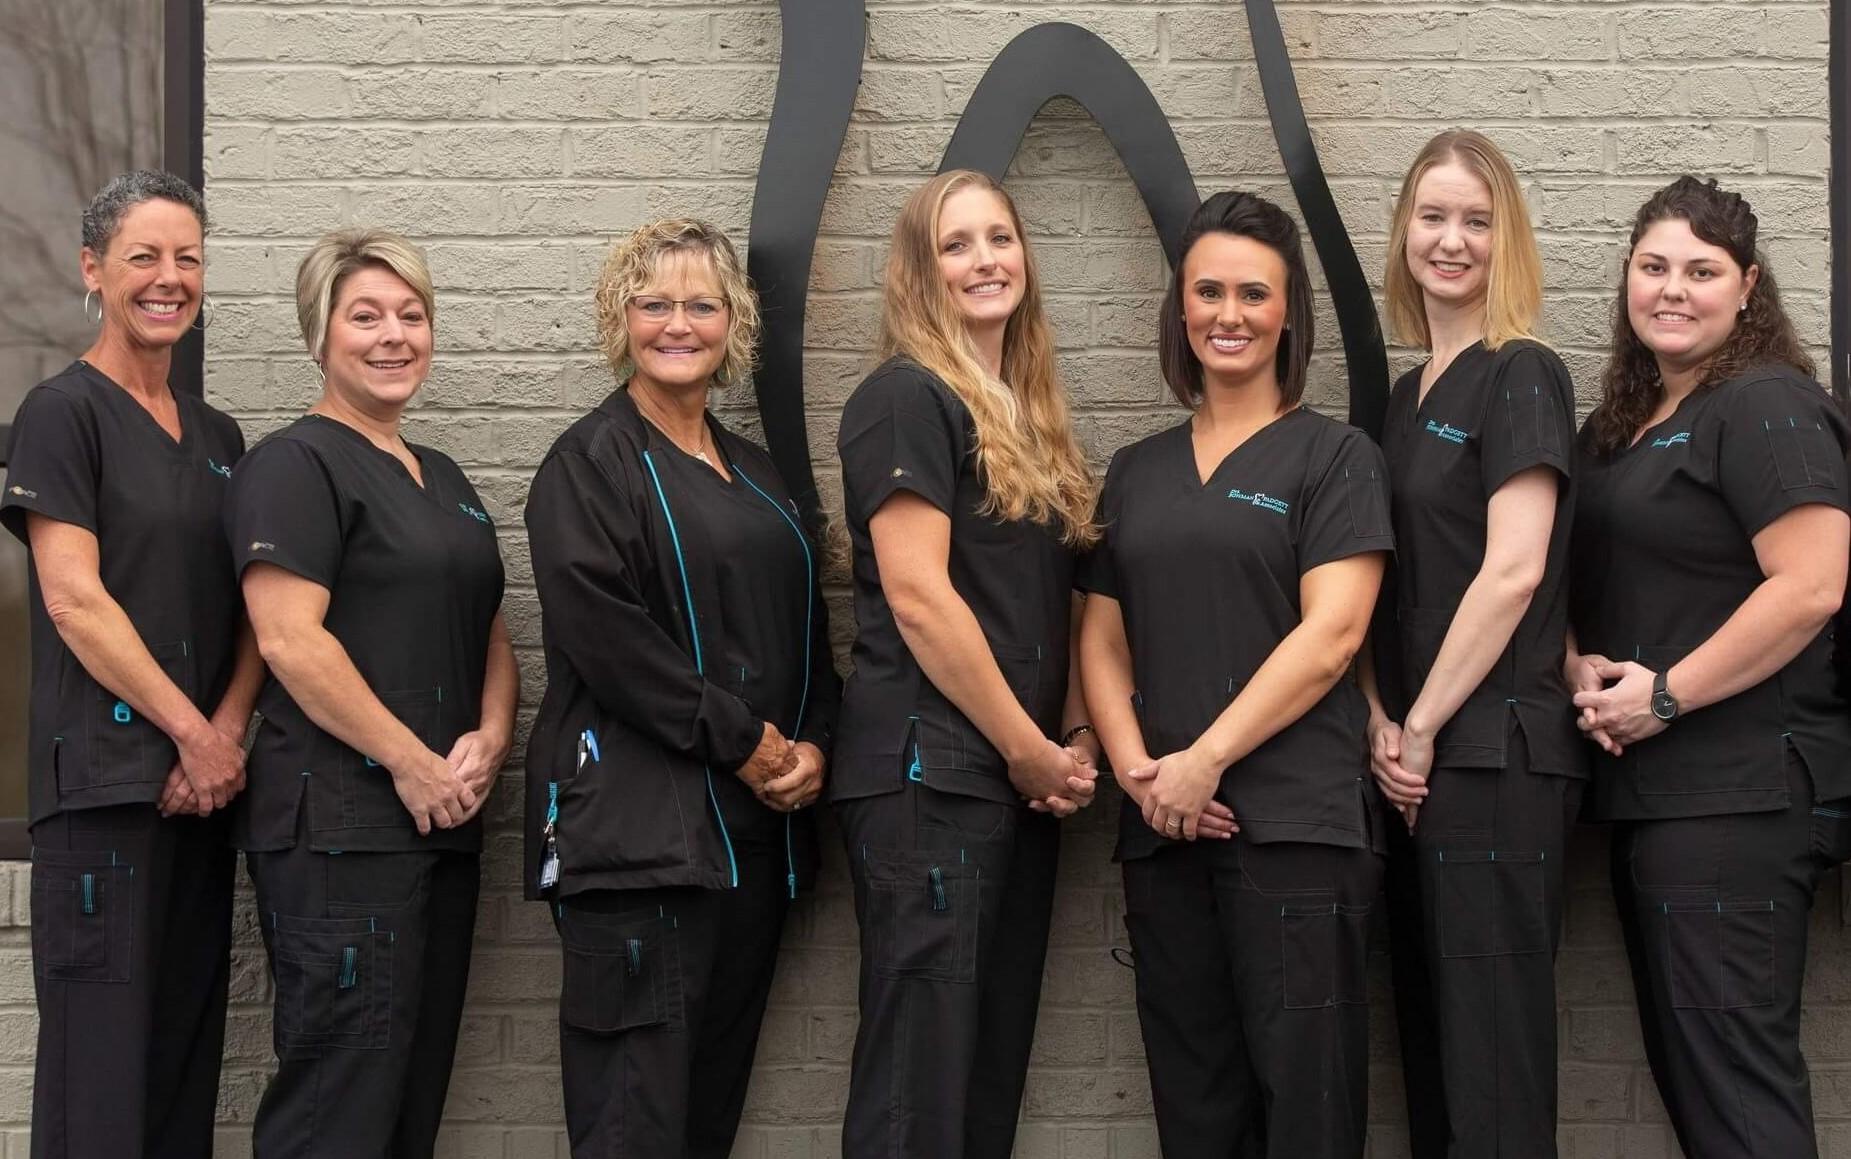 Dental Assistant Team Standing Together